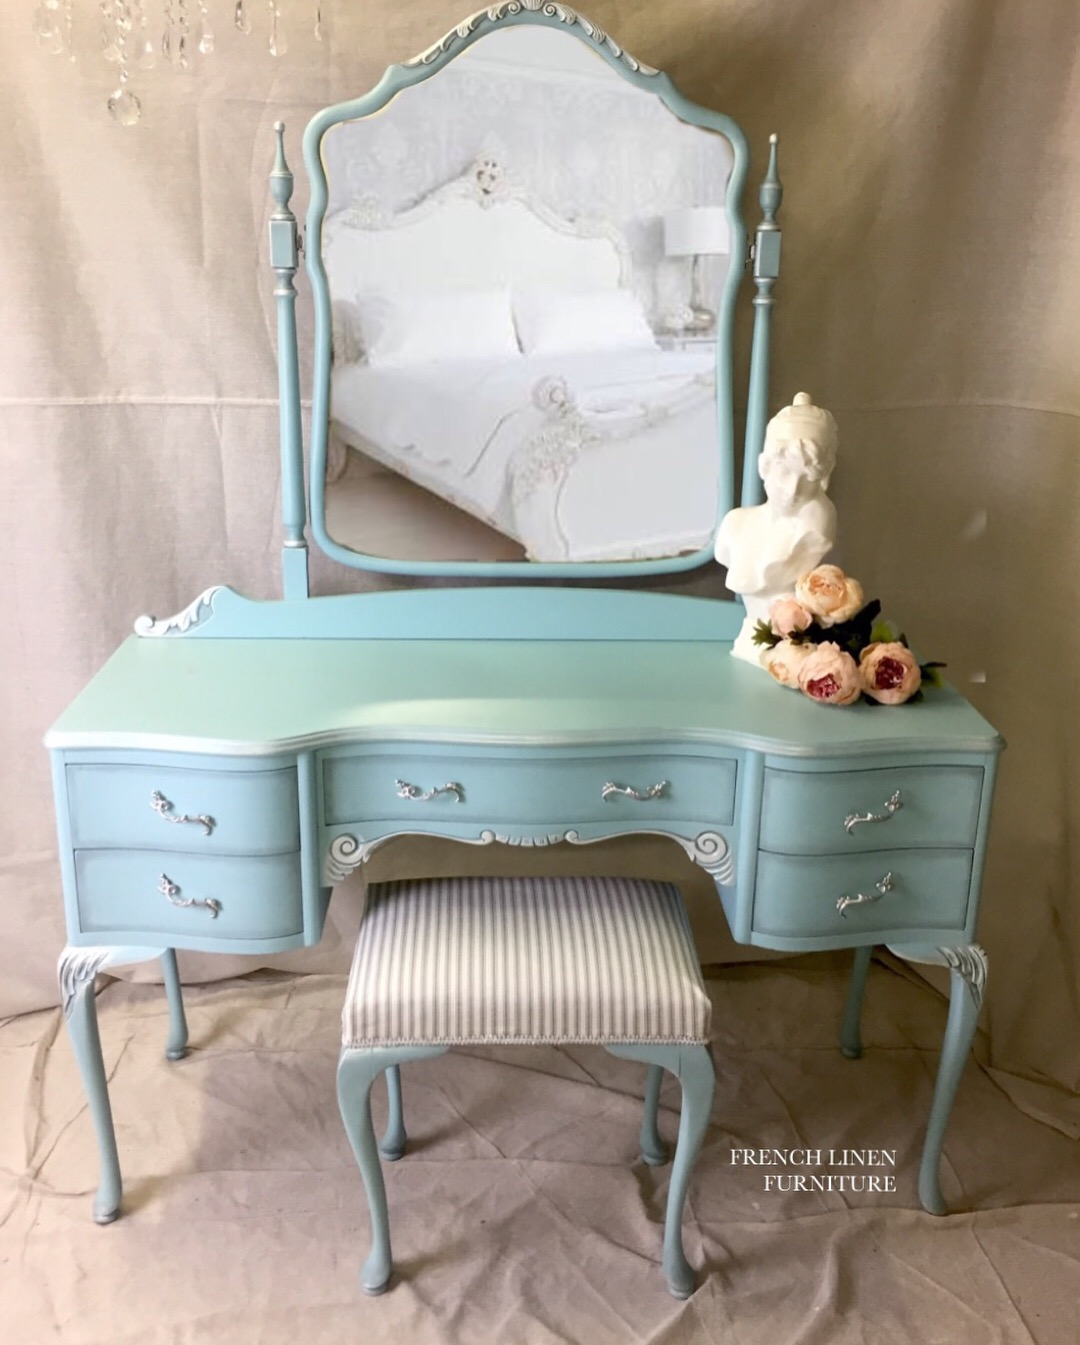 Merveilleux Furniture. This Gorgeous Tiffany Dressing Table Is Now Complete And Ready  To Go To Its New Home. . Antique Circa 1910 Oak Dressing Table Refinished  In ...